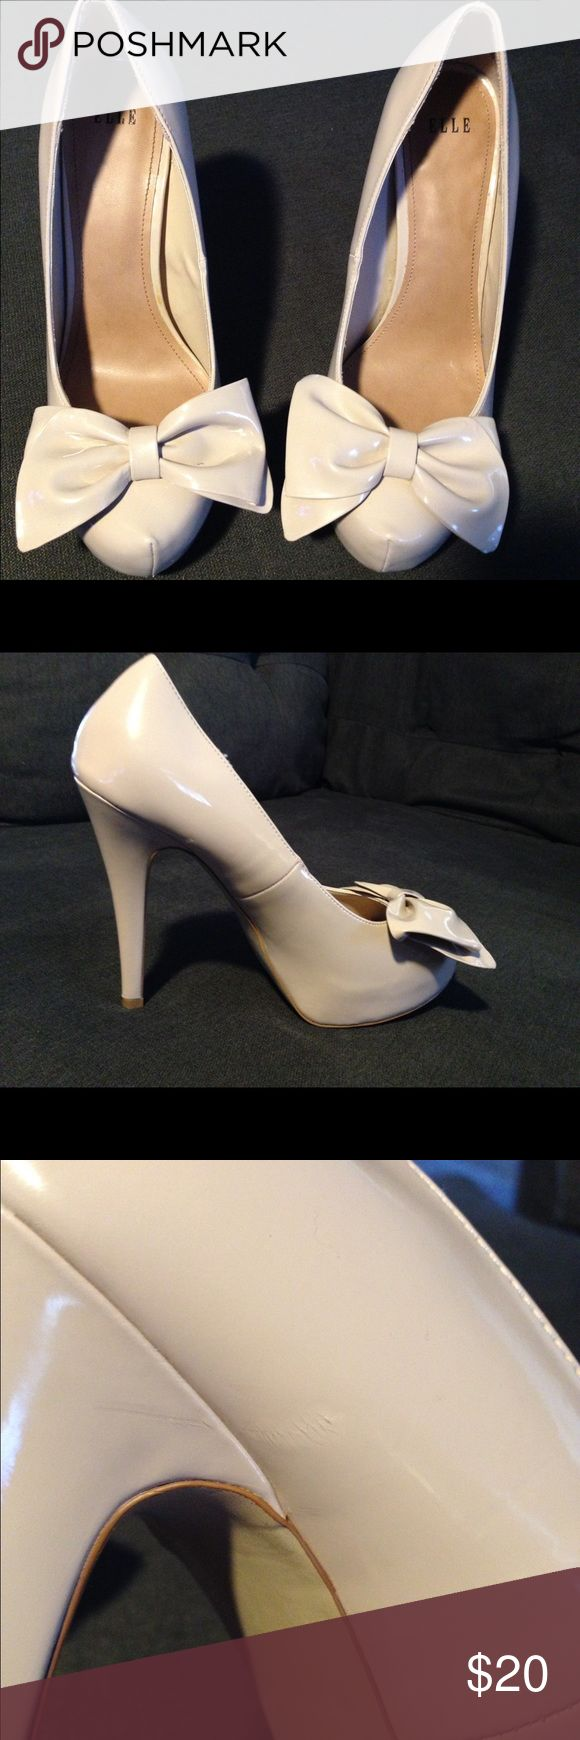 Elle nude high heel shoes with the bow size 8 1/2 ELLE nude high heel women's shoe with Bow. Size 8 1/2. Heel measures approximately 4 to 4.5 high. Preowned in great condition there is a small scuff. I've taken a photo for you to view it. very comfortable shoe. Original price $75. Only worn a couple of times. Beautiful shoe sexy shoe. Check out my other items to combine shipping. elle Shoes Heels